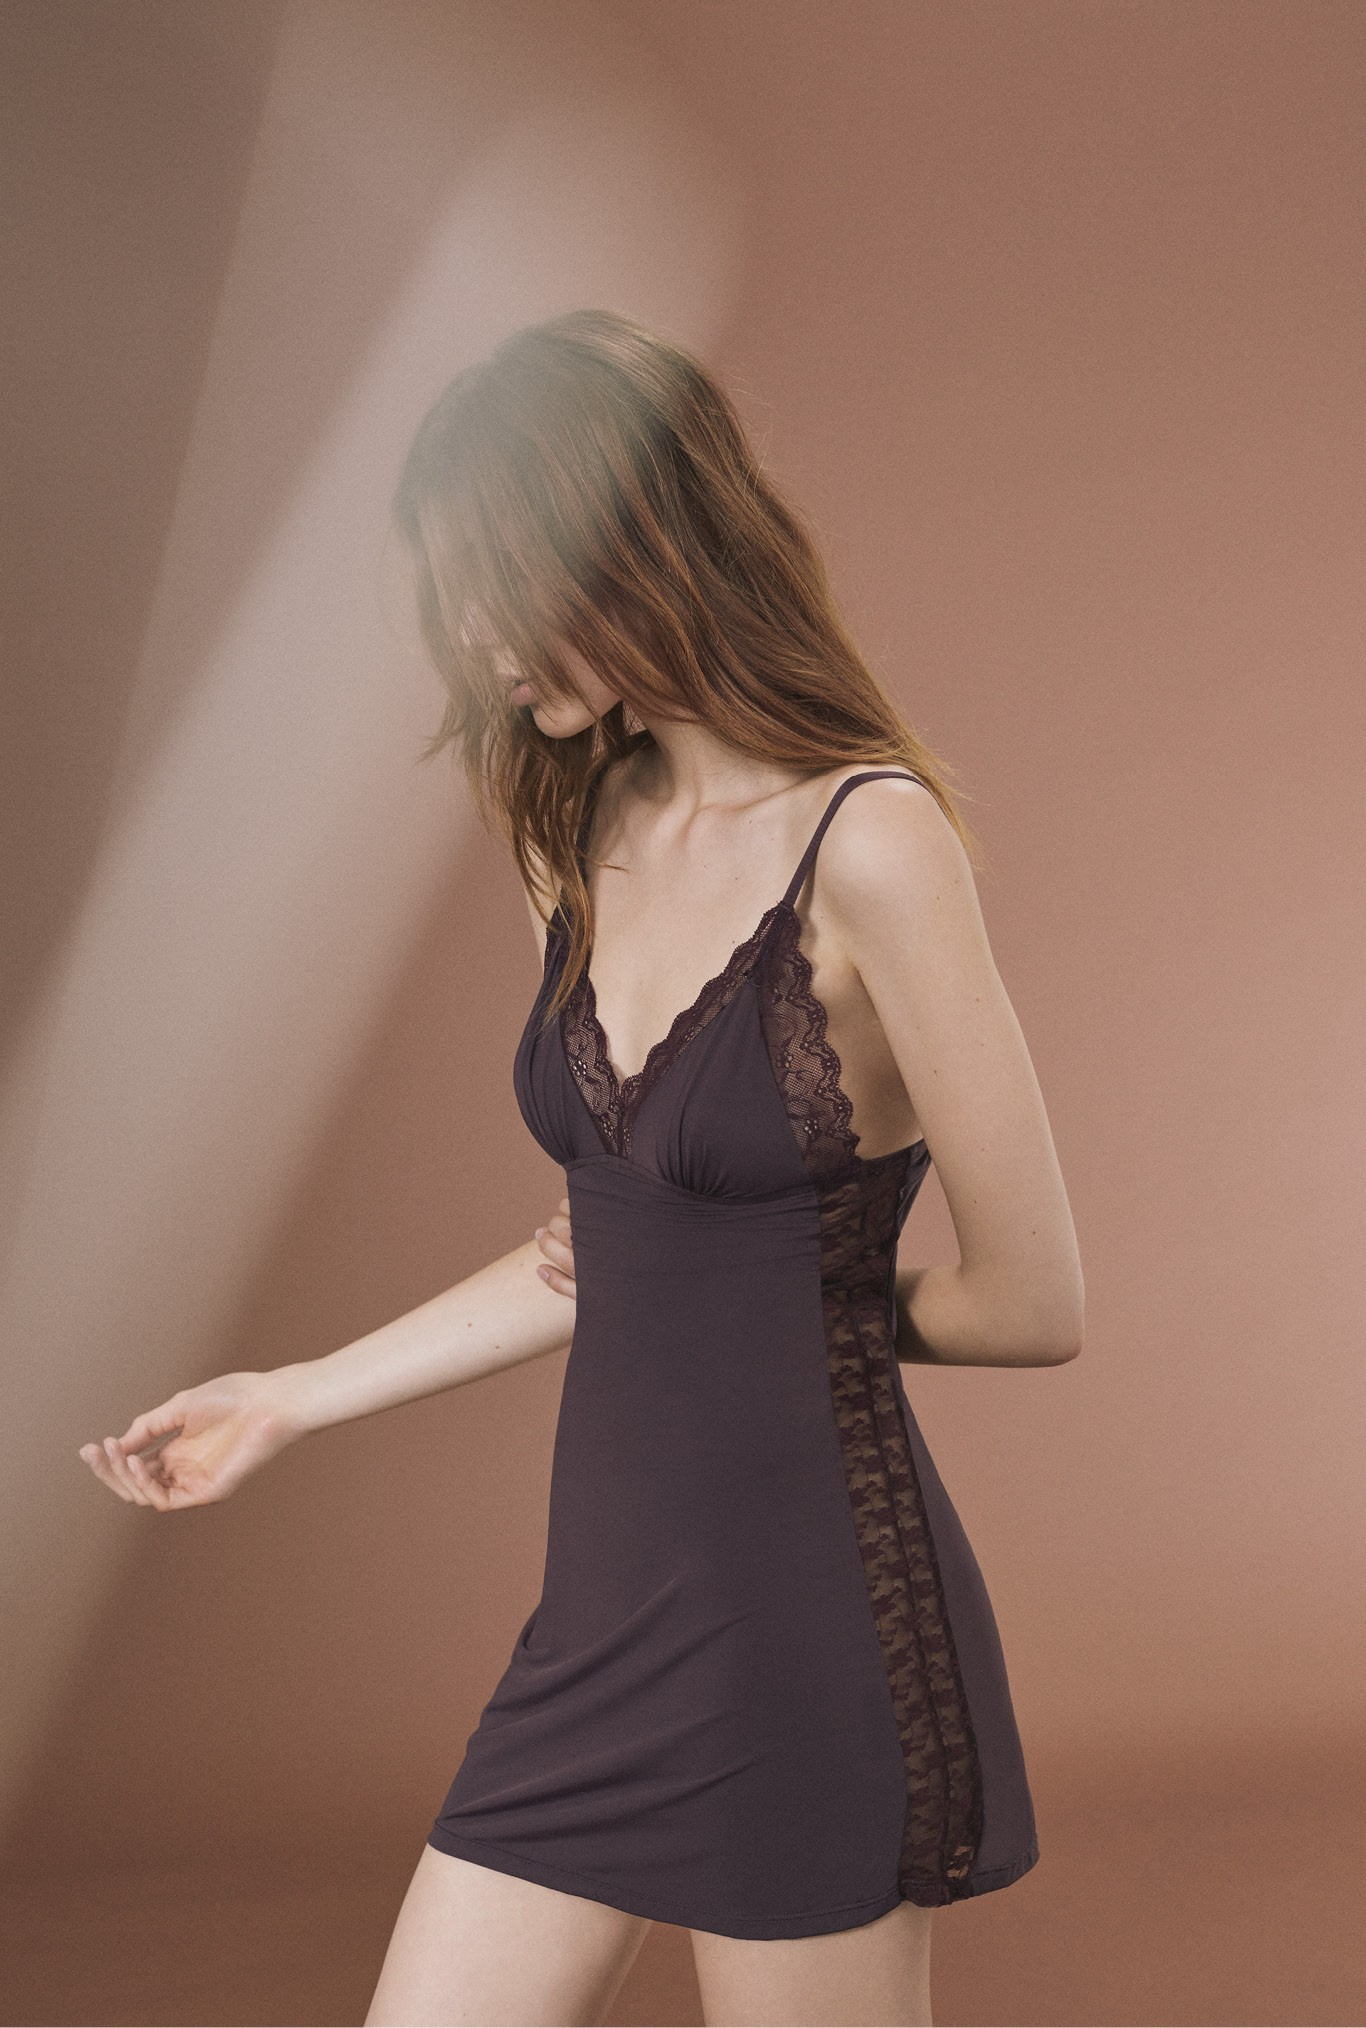 Mango - Intimates Herfst/Winter 2015